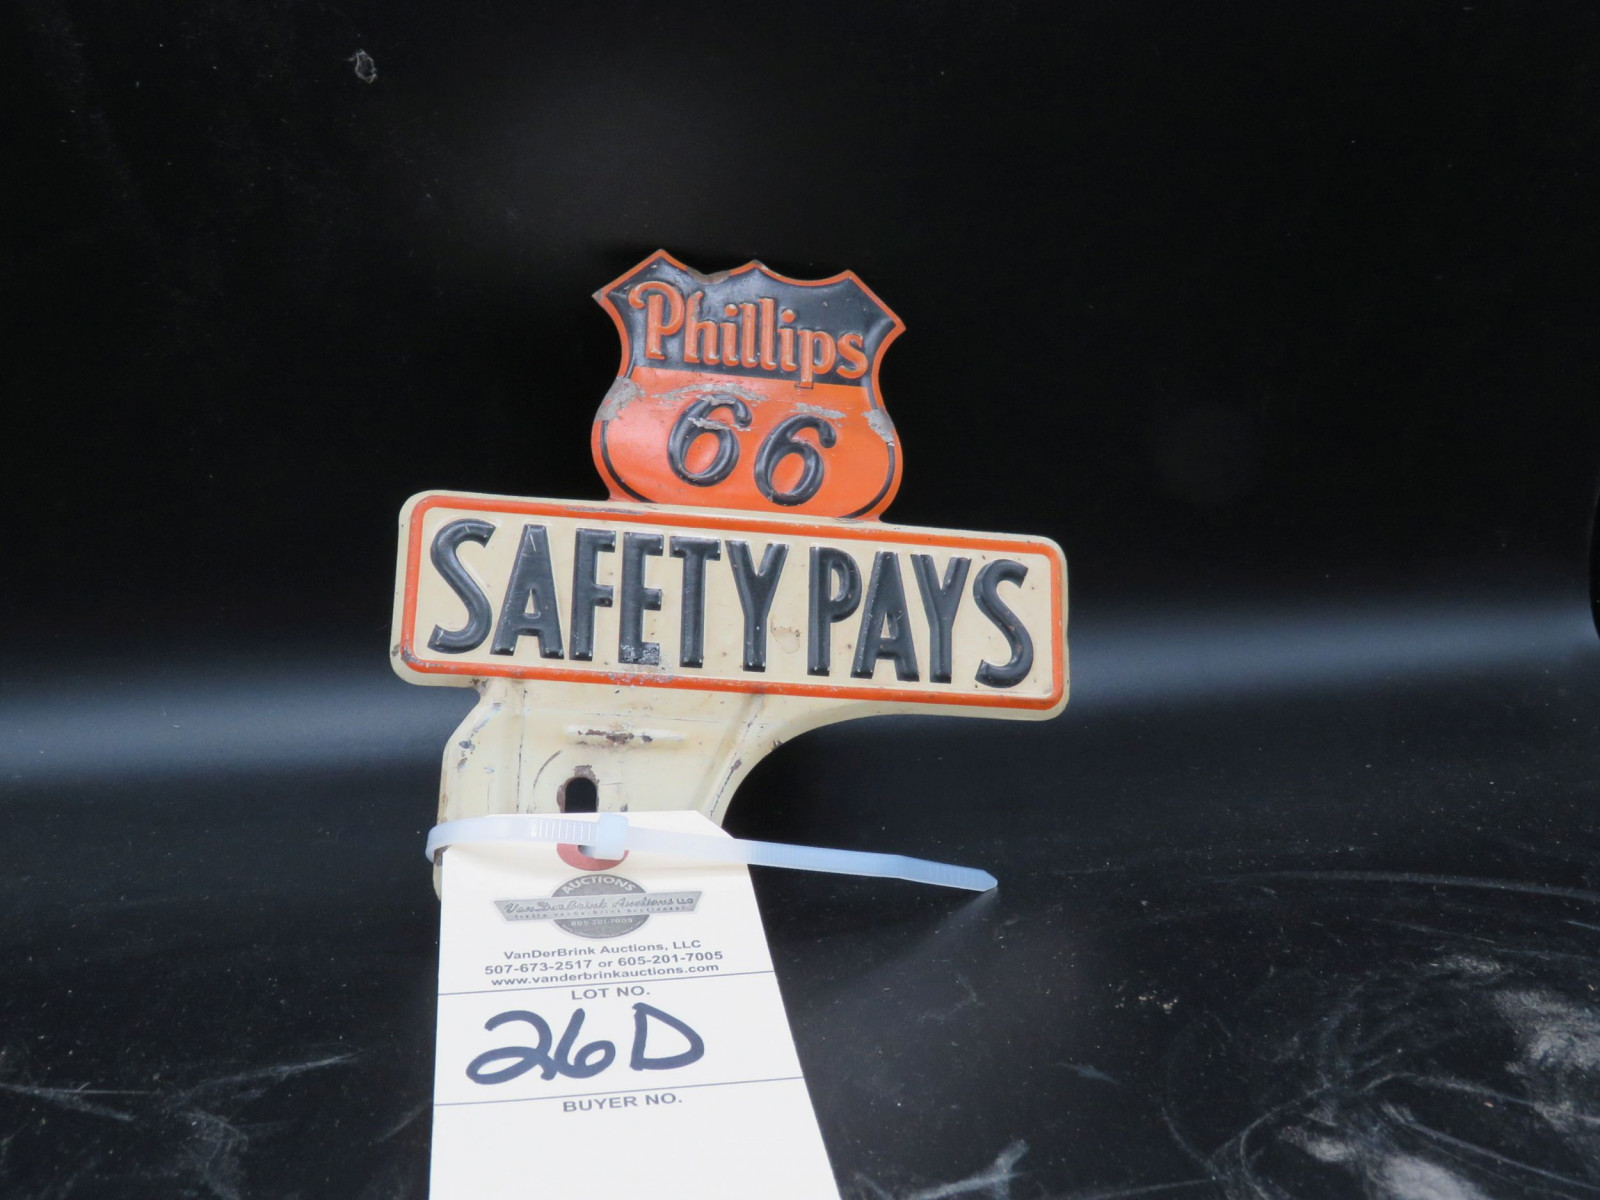 Vintage Phillips 66 License Plate Topper - Image 1